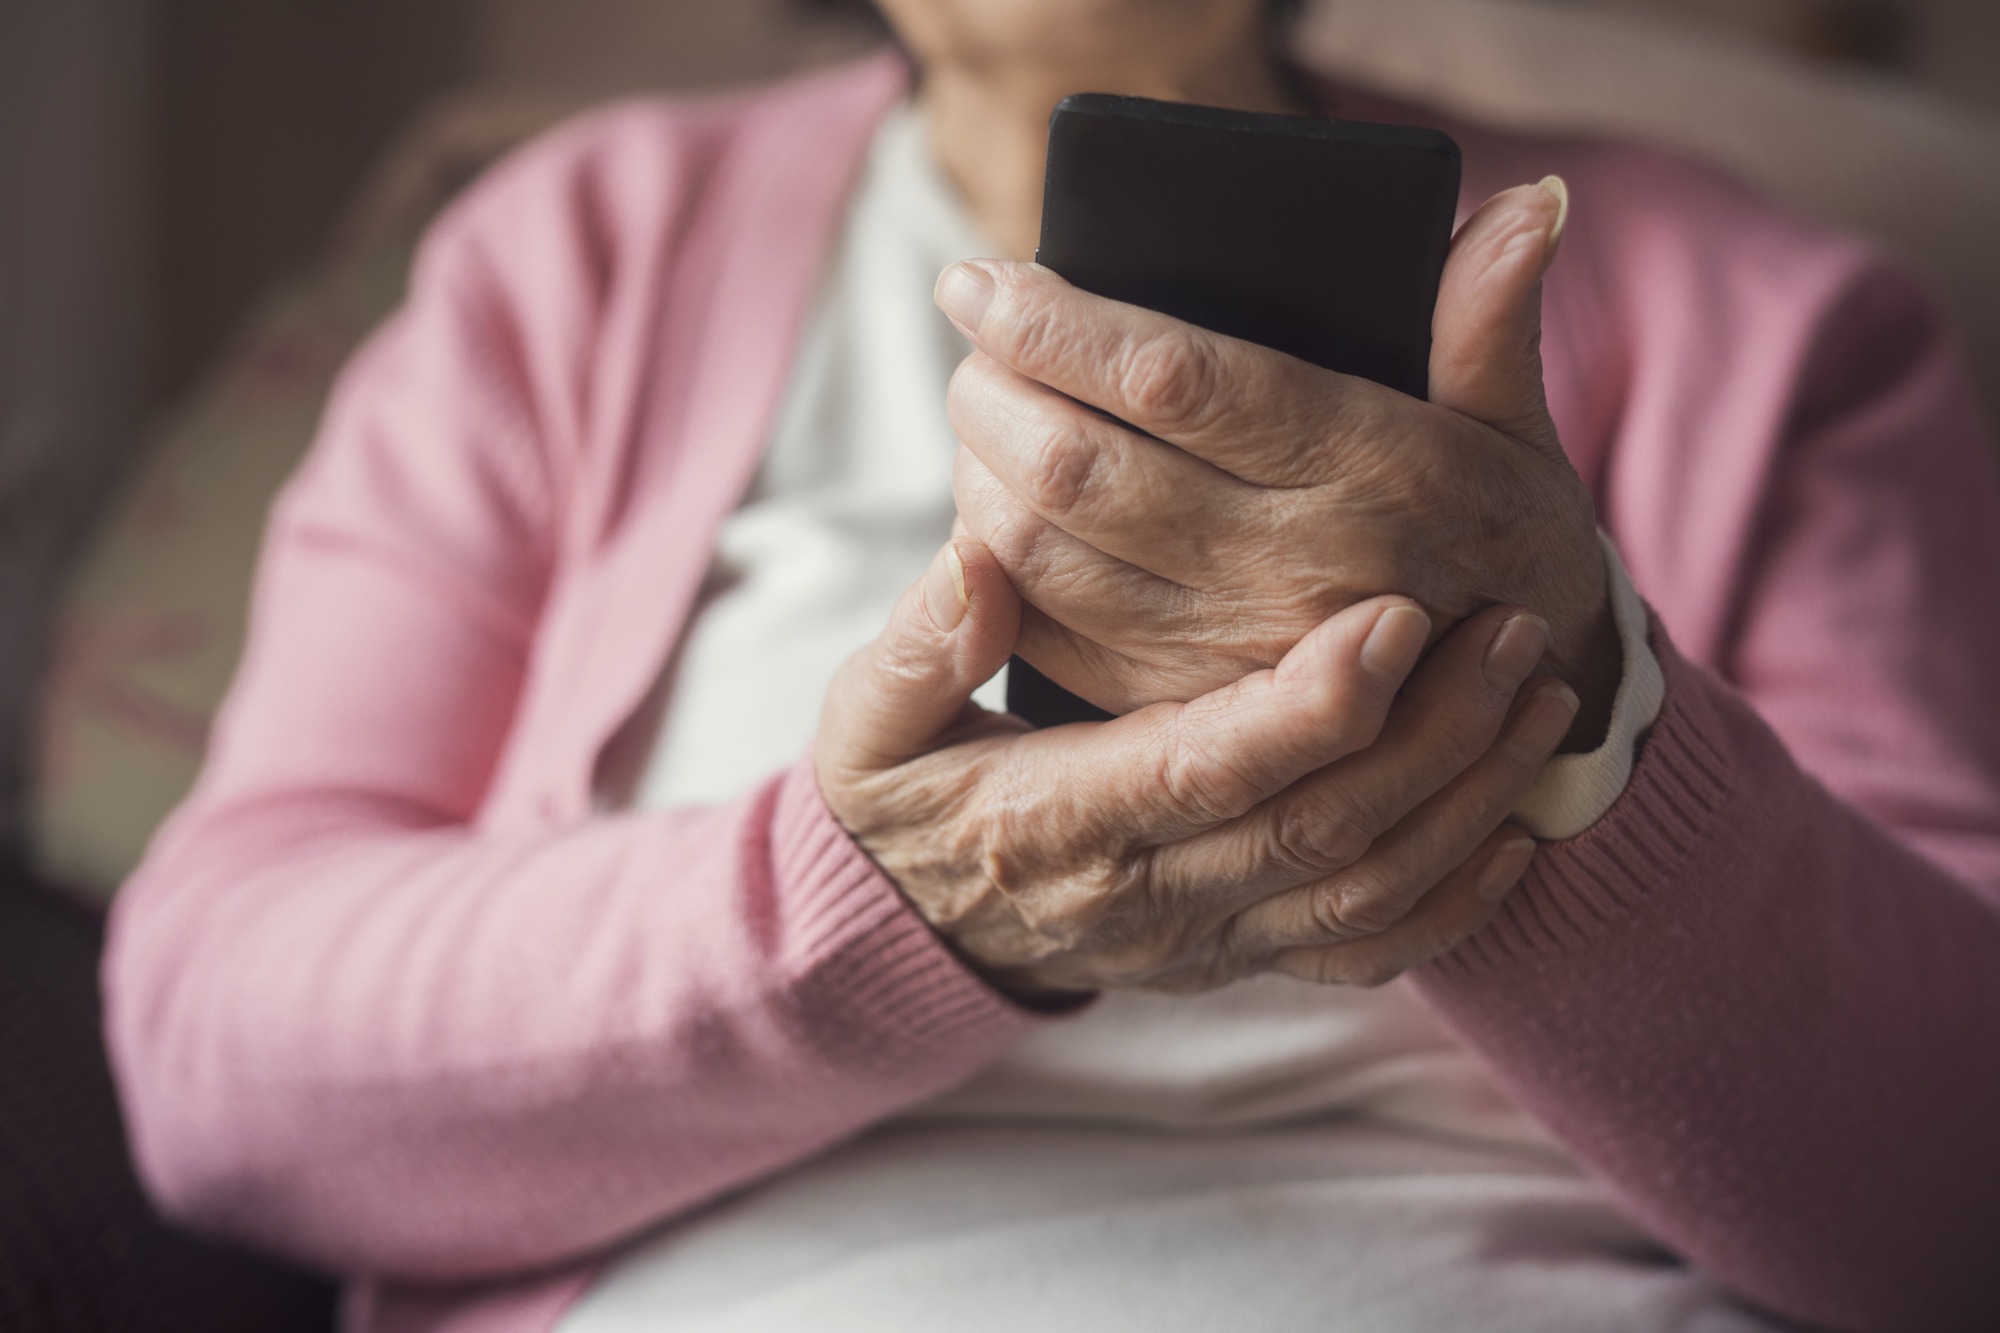 The so-called ore-ore (it's me, it's me) scam refers to the swindling of mostly elderly people by perpetrators who impersonate their relatives over the phone and ask for money transfers.   GETTY IMAGES